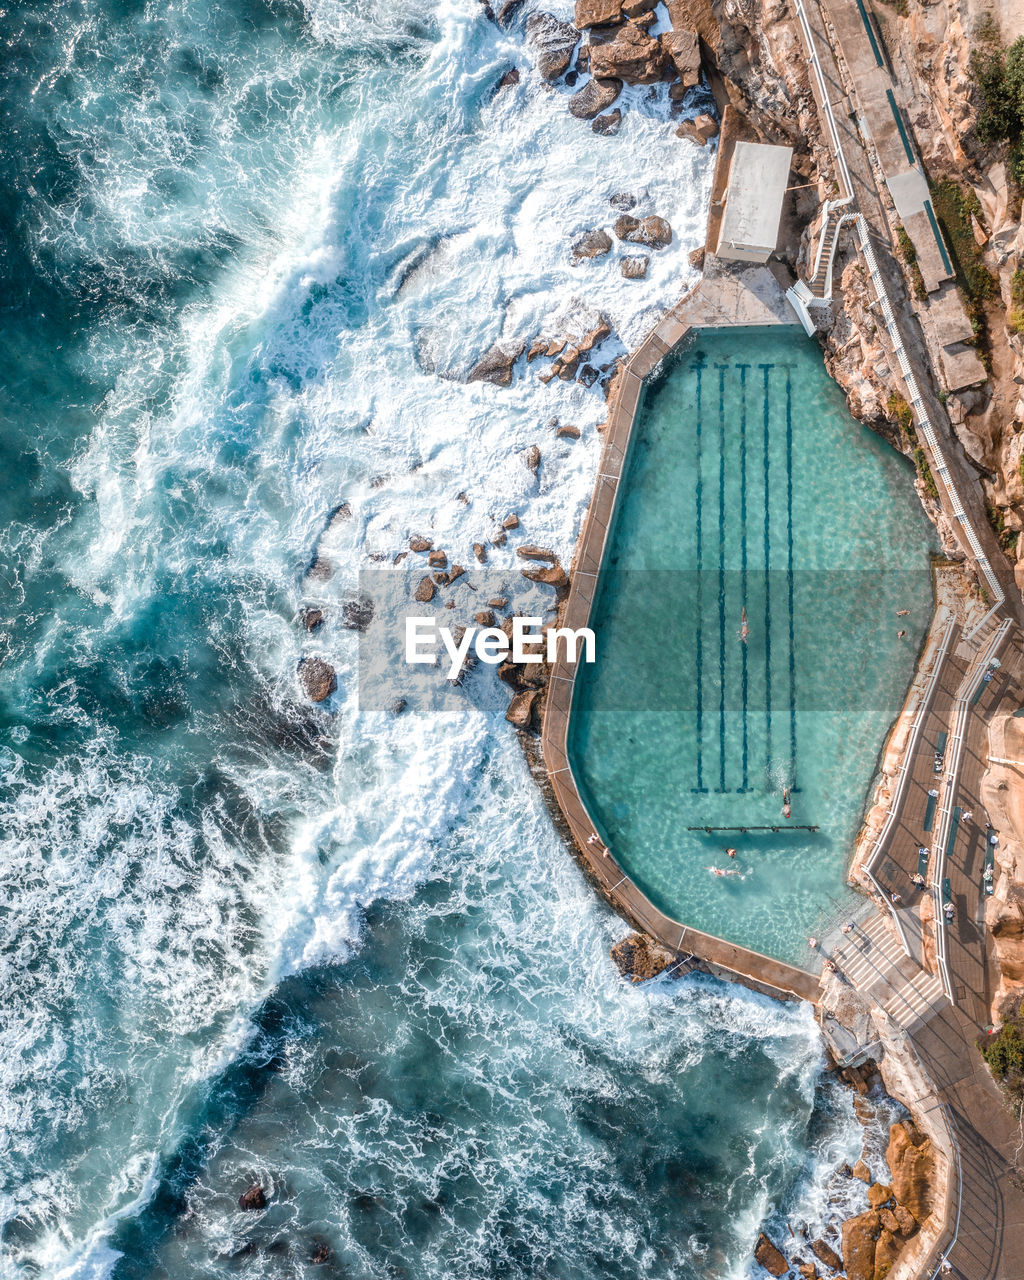 water, sea, motion, architecture, nature, day, nautical vessel, travel, travel destinations, beauty in nature, sport, outdoors, no people, tourism, aquatic sport, high angle view, wave, built structure, scenics - nature, swimming pool, turquoise colored